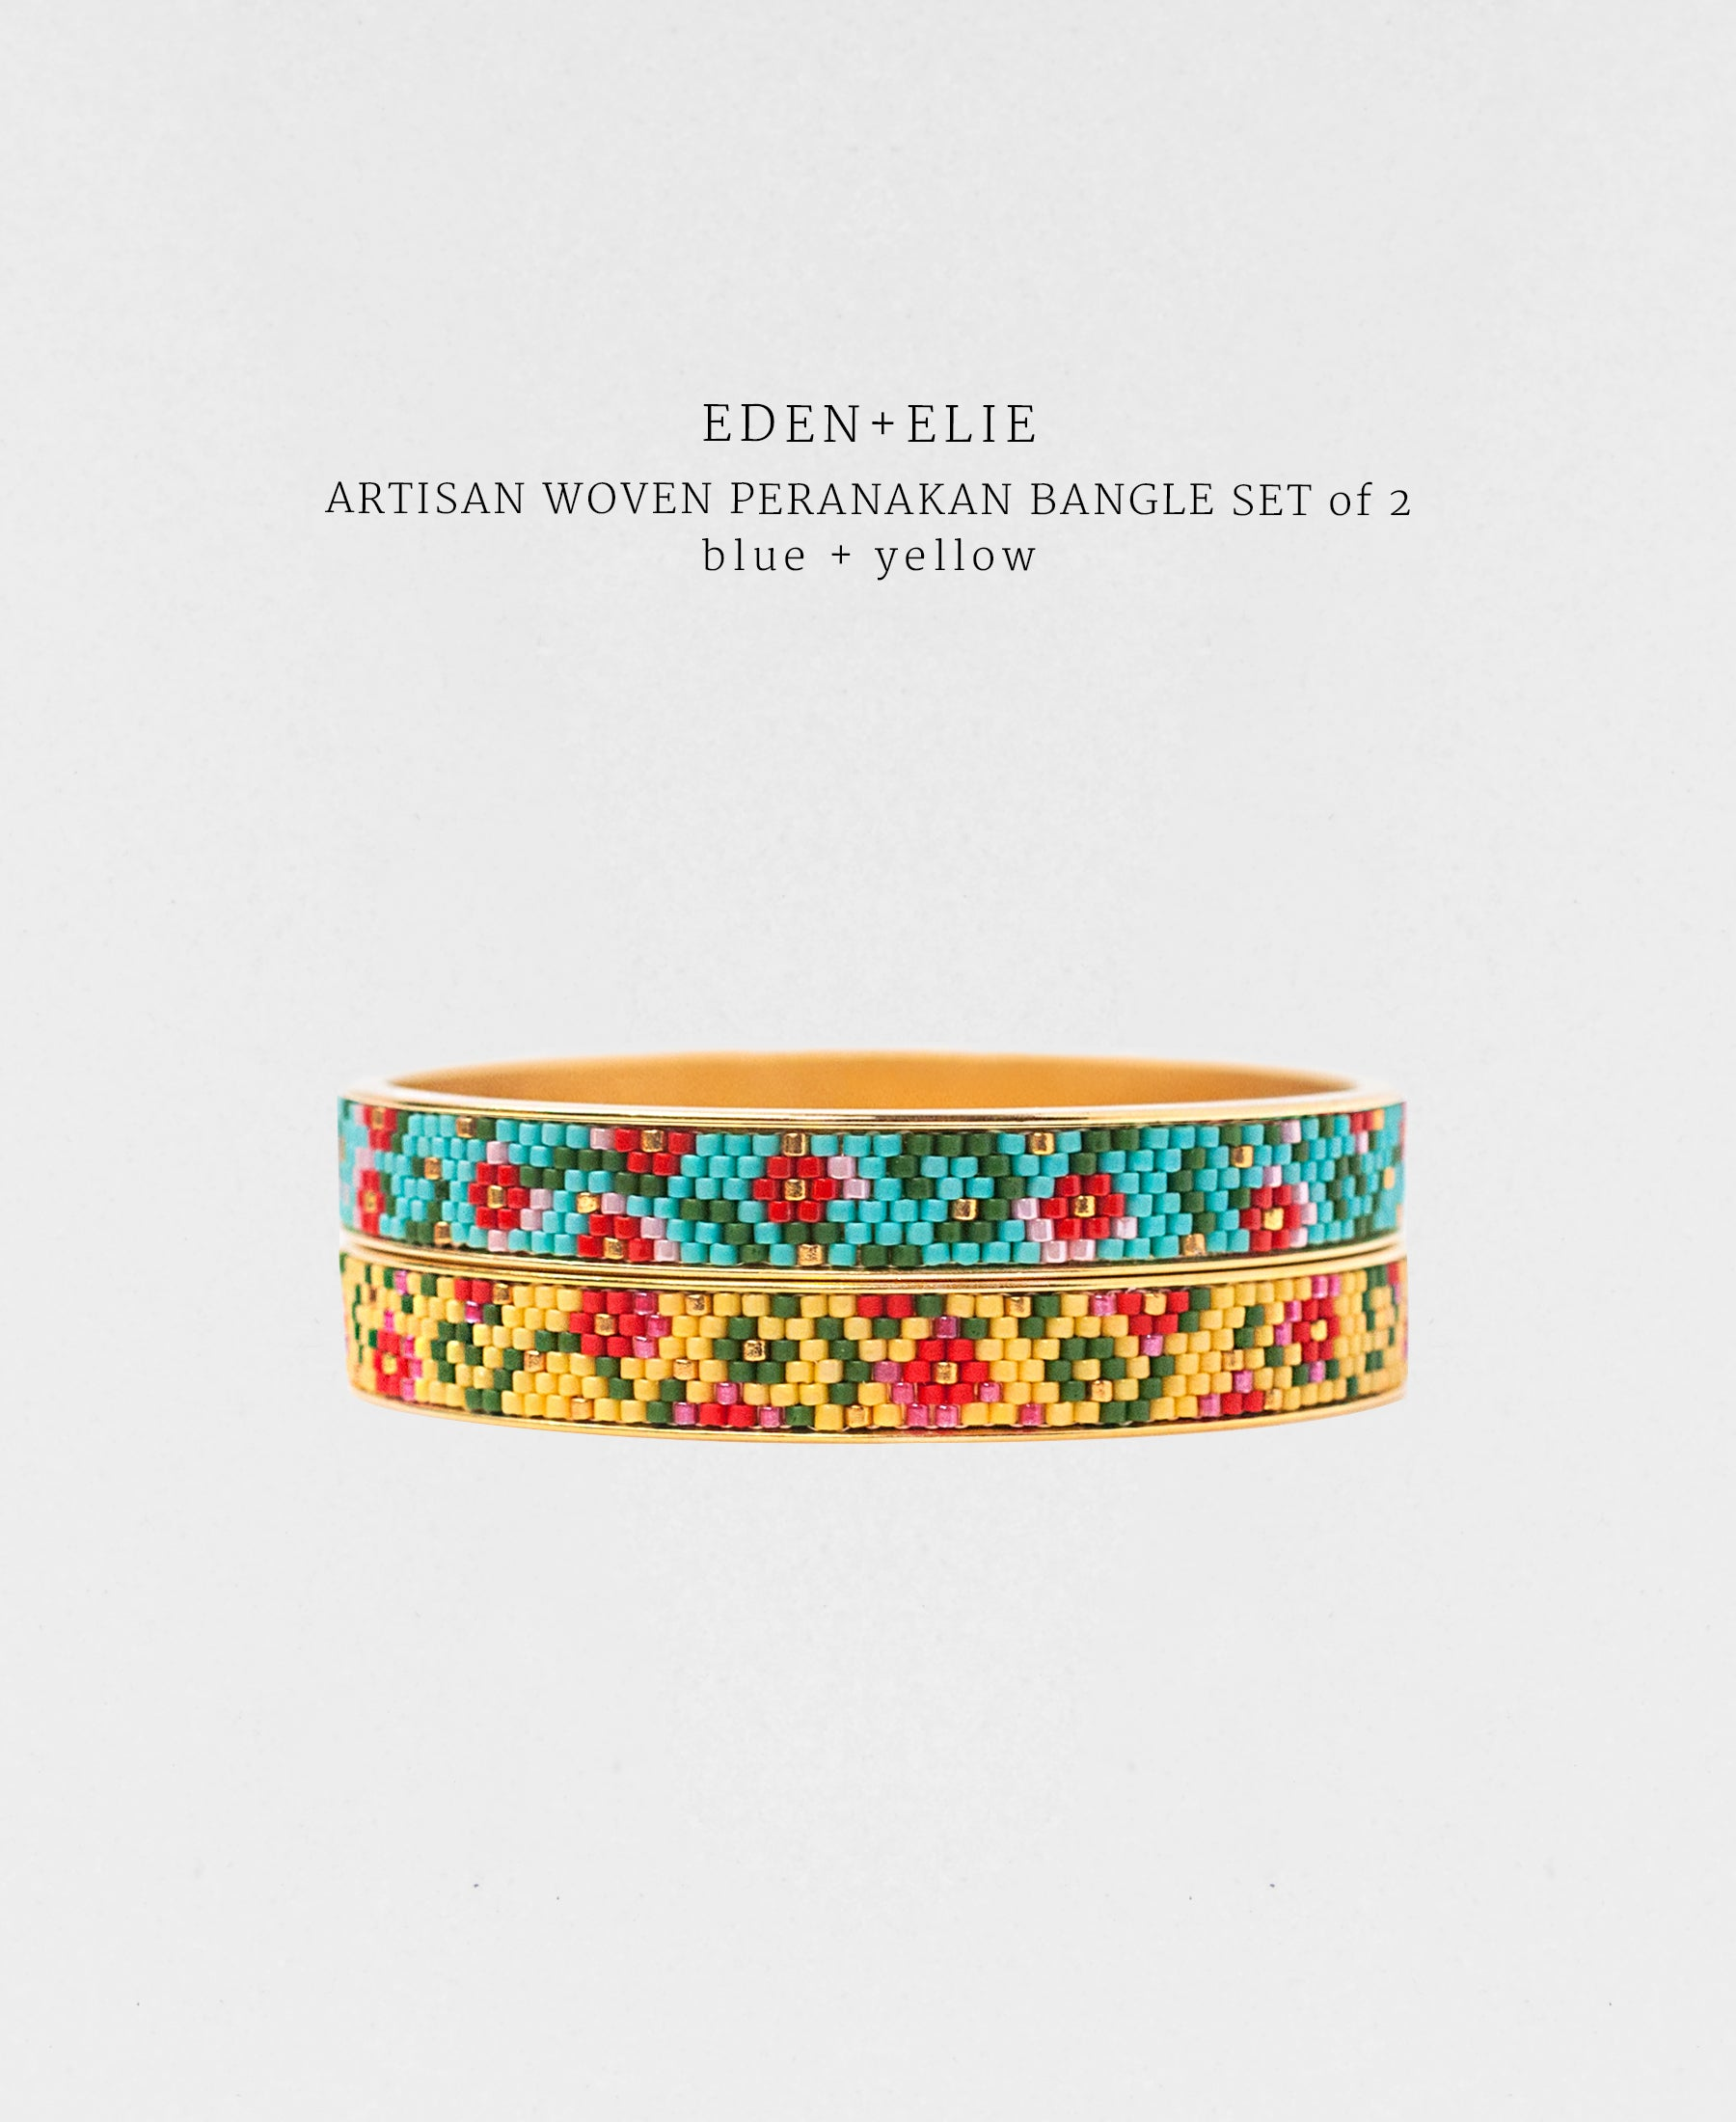 EDEN + ELIE Modern Peranakan gold narrow bangles set of 2 - blue + yellow